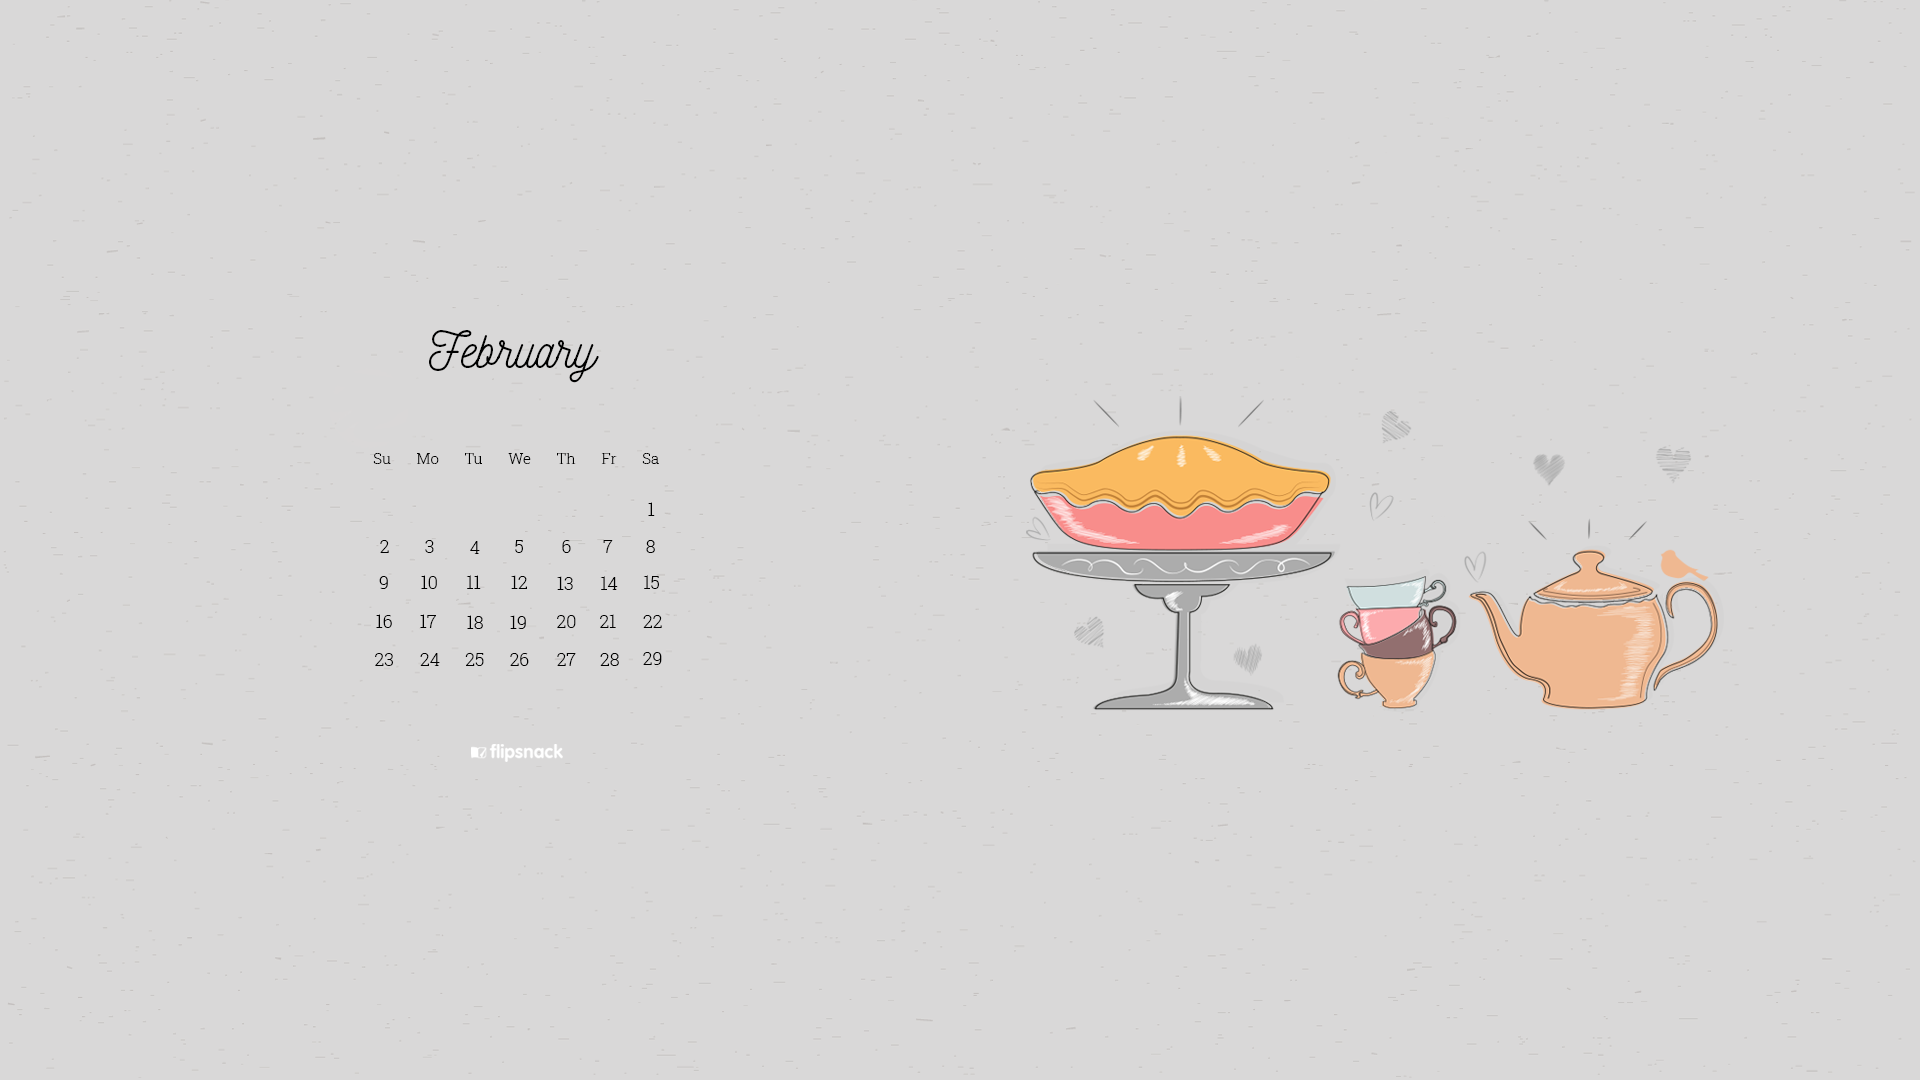 Free 2020 Wallpaper Calendars January December Flipsnack Blog